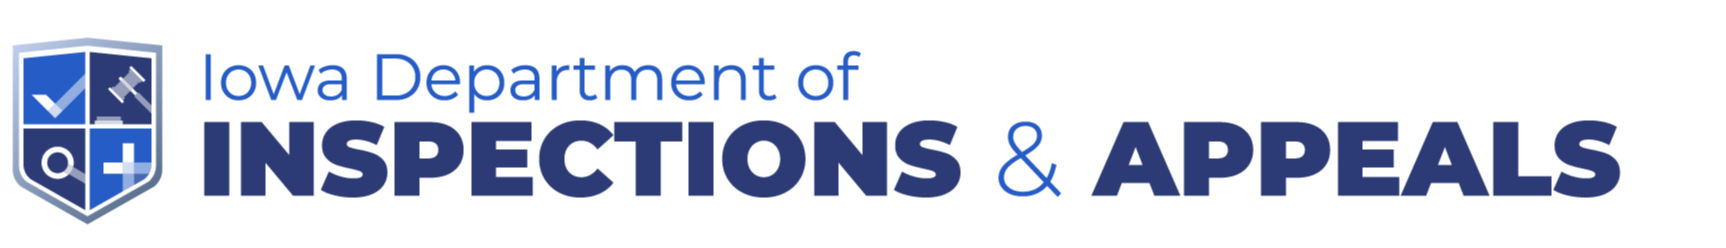 Iowa Department of Inspections and Appeals logo